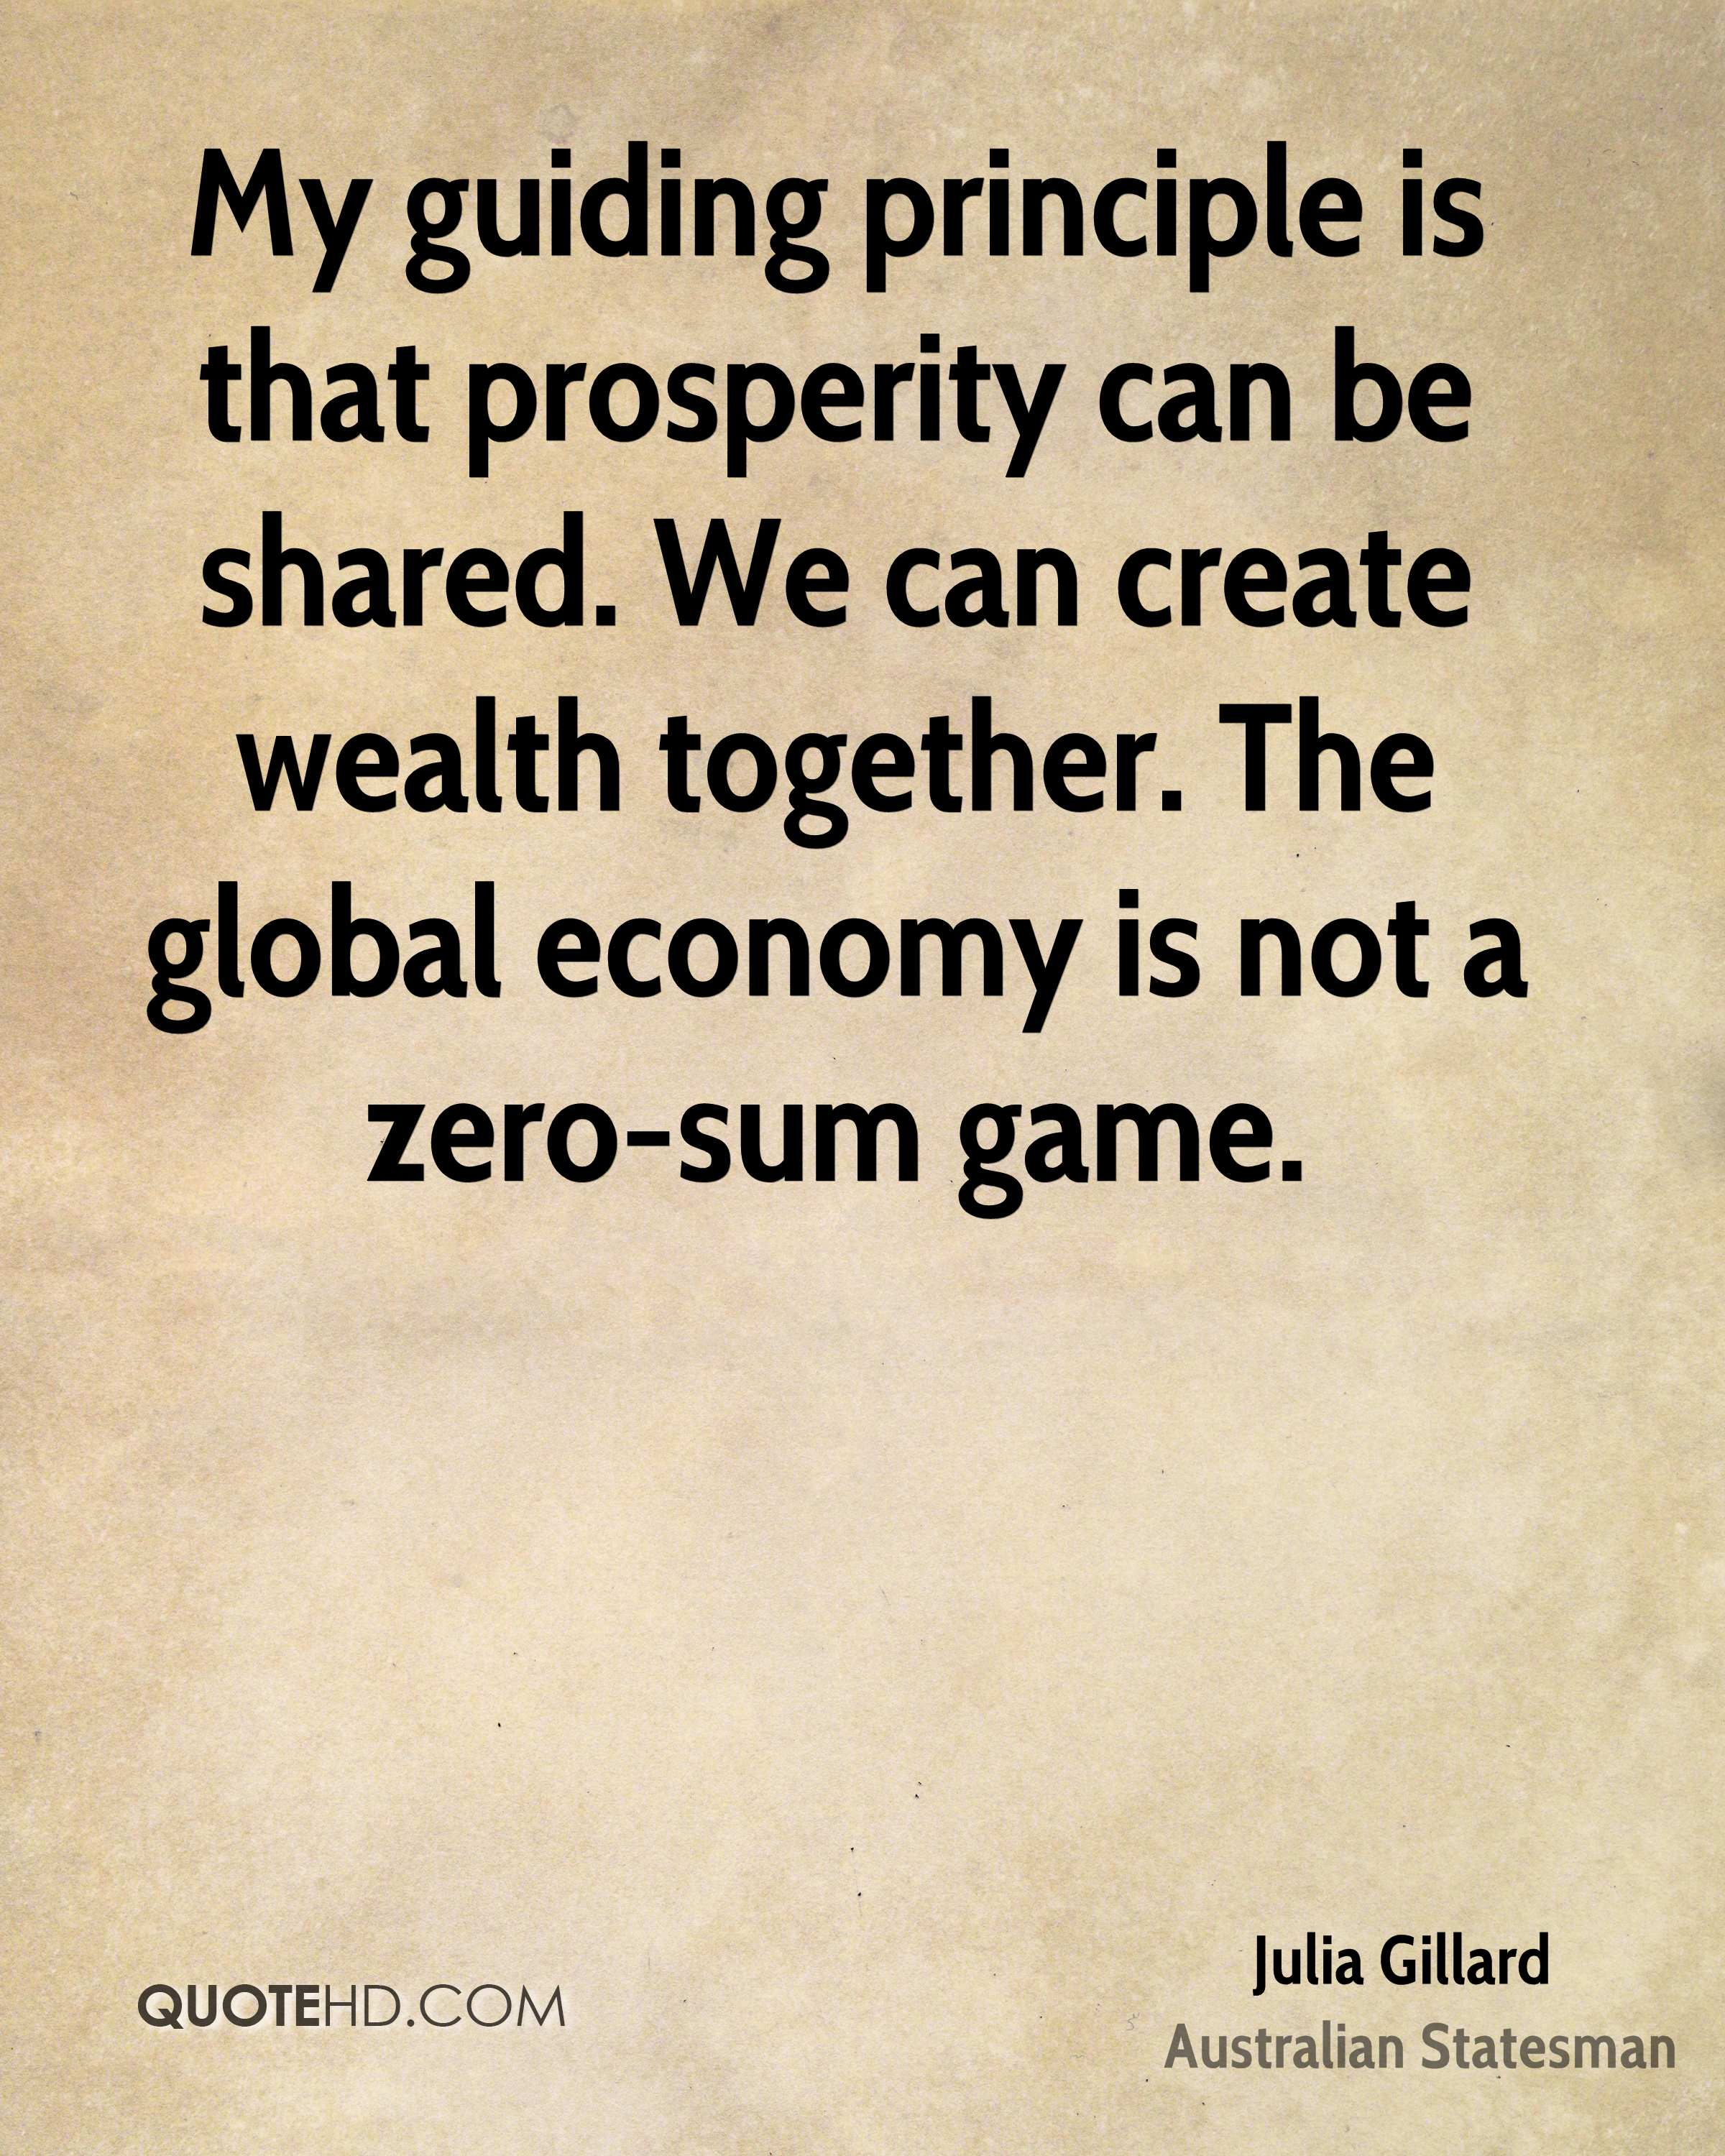 My guiding principle is that prosperity can be shared. We can create wealth together. The global economy is not a zero-sum game.